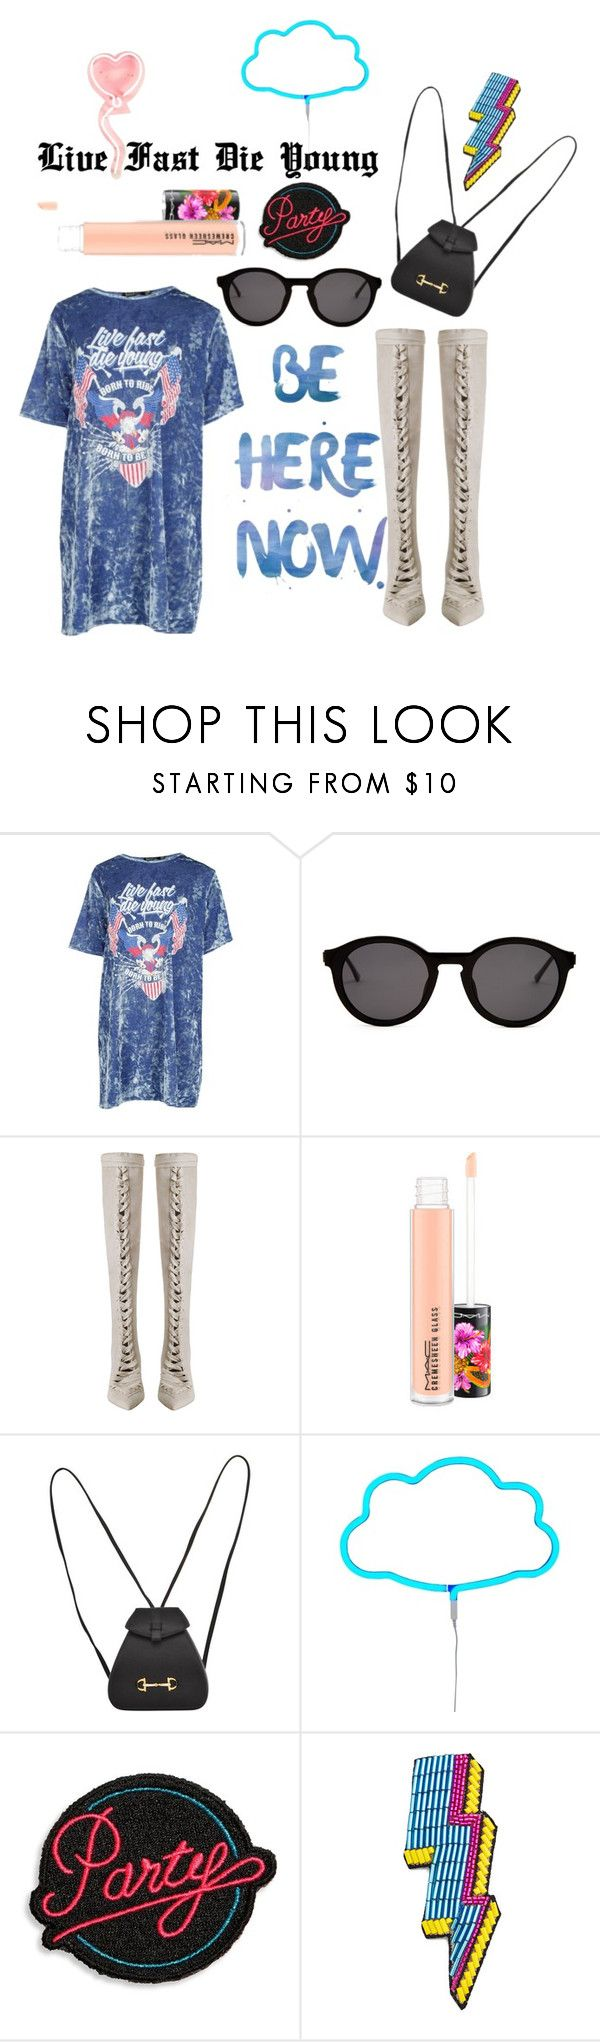 """""""Live Fast Die Young"""" by agsabins ❤ liked on Polyvore featuring Boohoo, Thierry Lasry, Zimmermann, MAC Cosmetics, Gucci, A Little Lovely Company, Marc Jacobs and Happy Embellishments"""